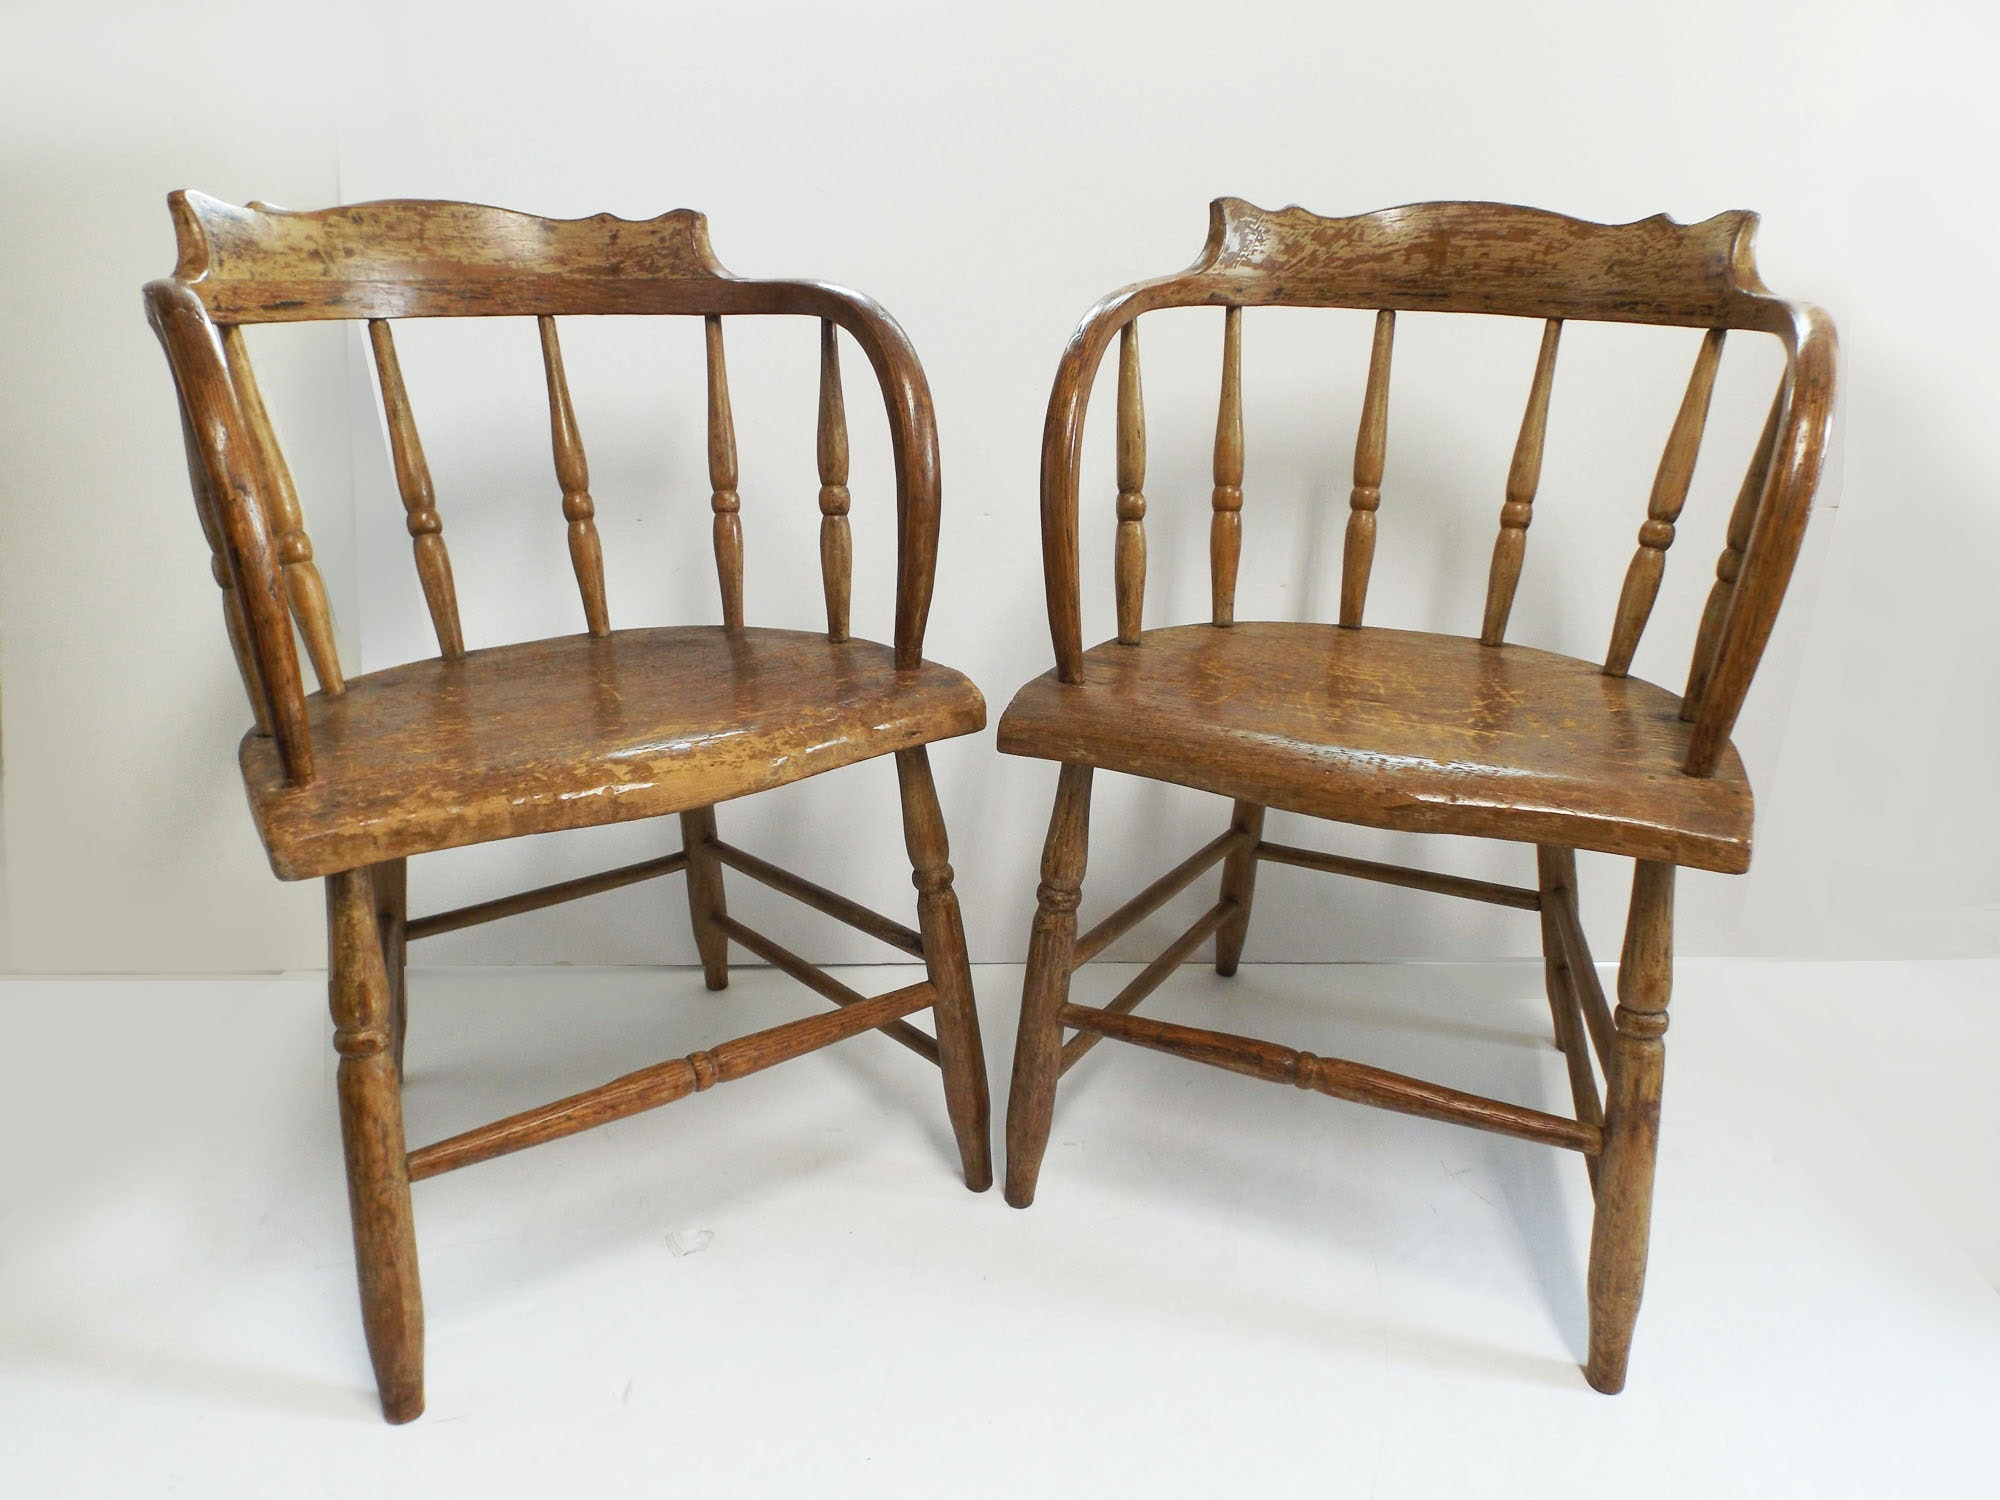 Lovely A Fabulous Pair Of Early Captainu0027s Chairs From Indian Hill Estate